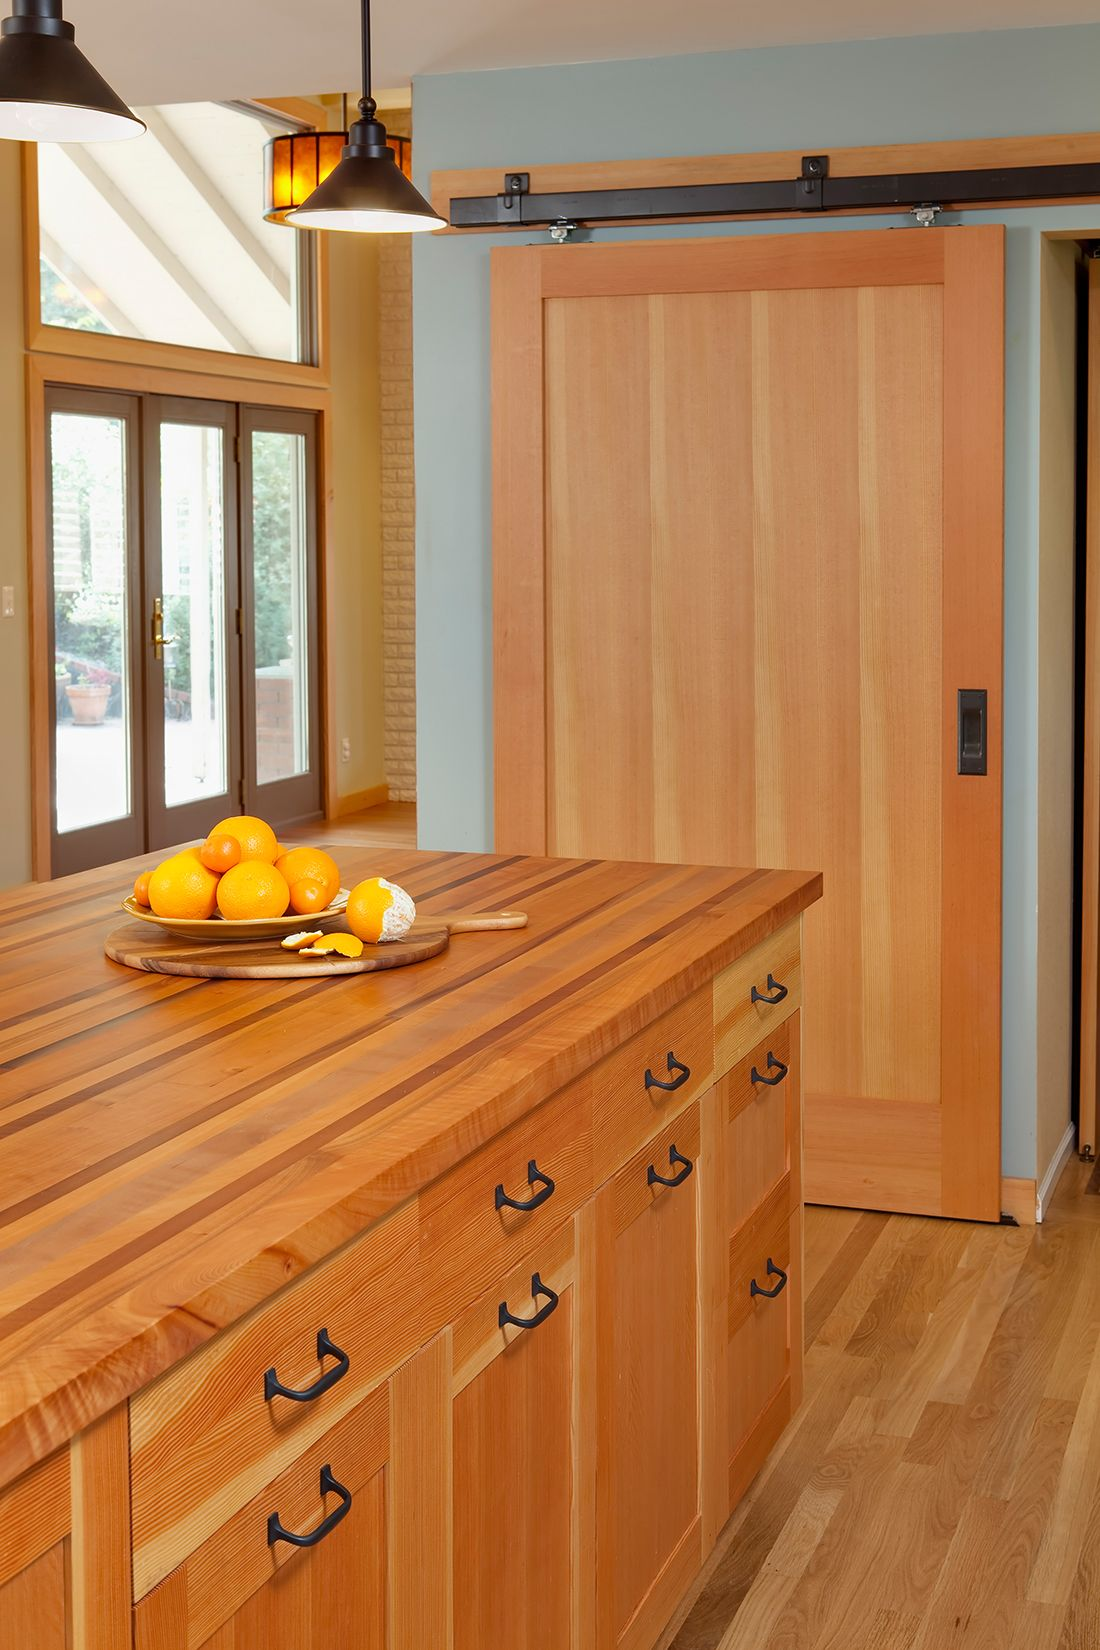 A 1950 S Home With All Original Finishes That Needed Upgrading Special Care Was Kitchen Remodel Kitchen Cabinets And Countertops Cherry Wood Kitchen Cabinets